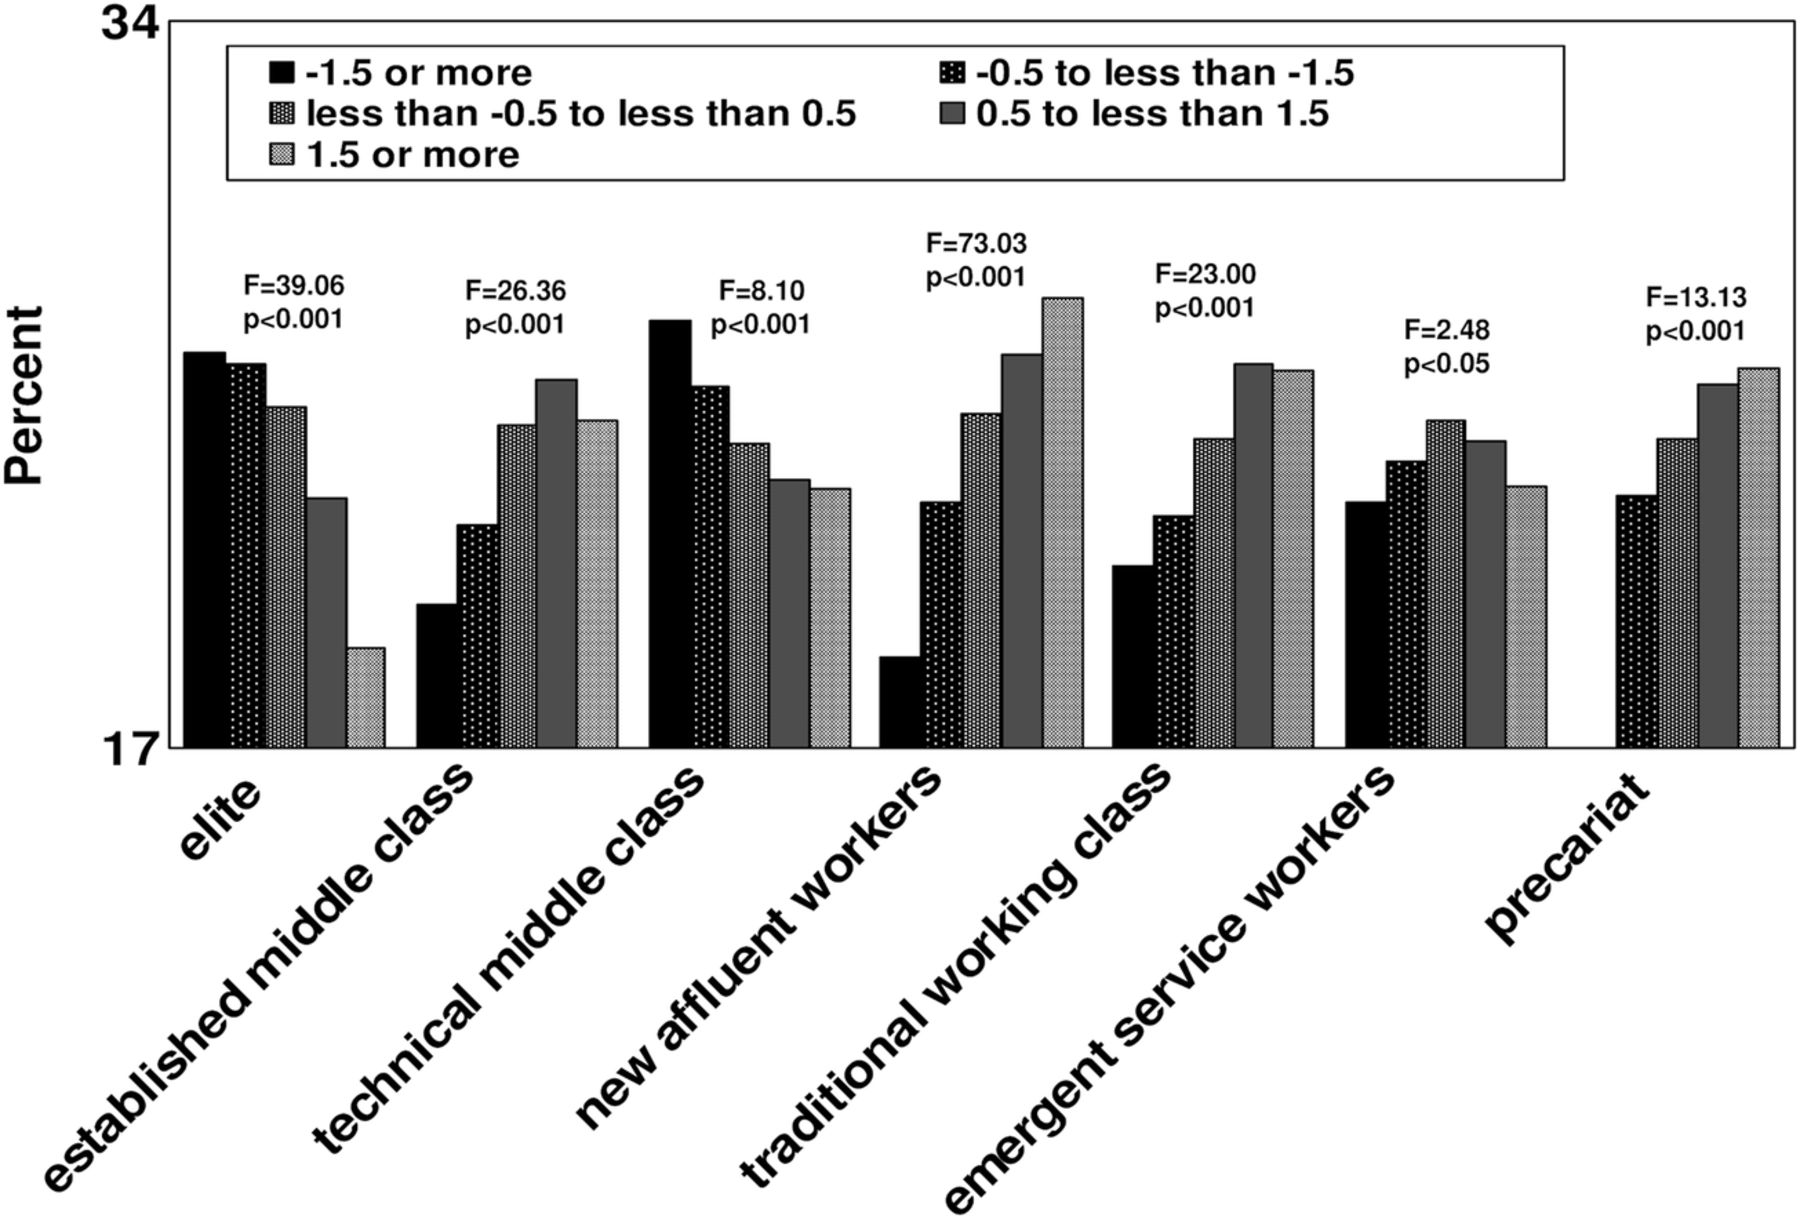 Do Adult Obesity Rates In England Vary By Insecurity As Well As By